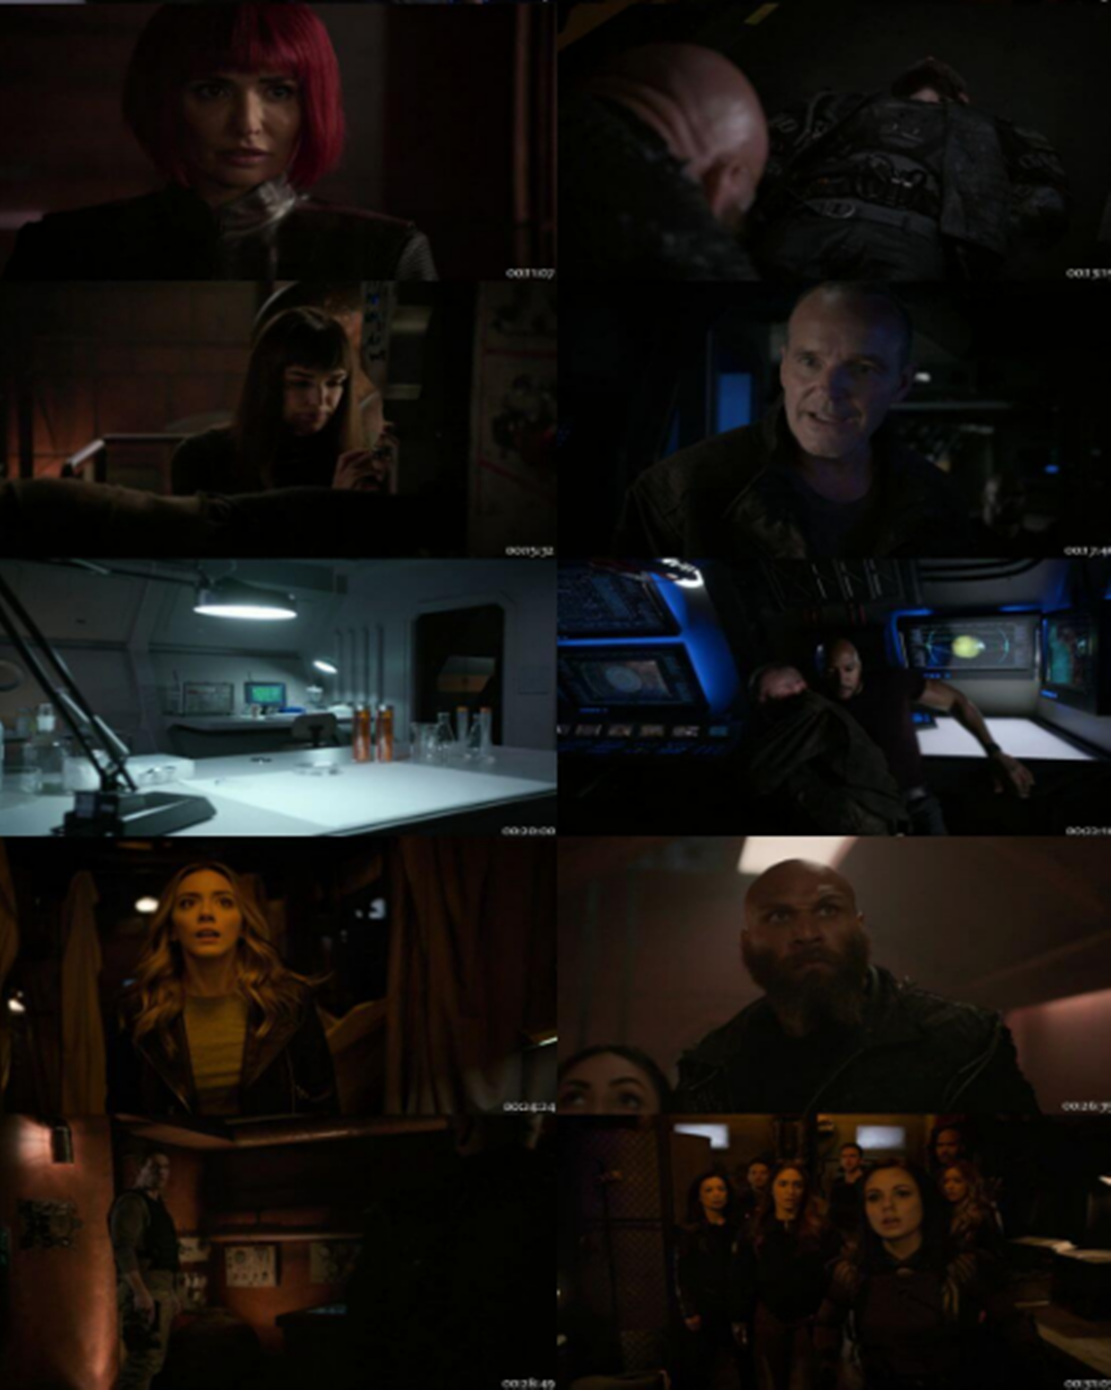 Marvels Agents of S.H.I.E.L.D S06 Episode 09 |350MB | 720p ESubs| Download Now